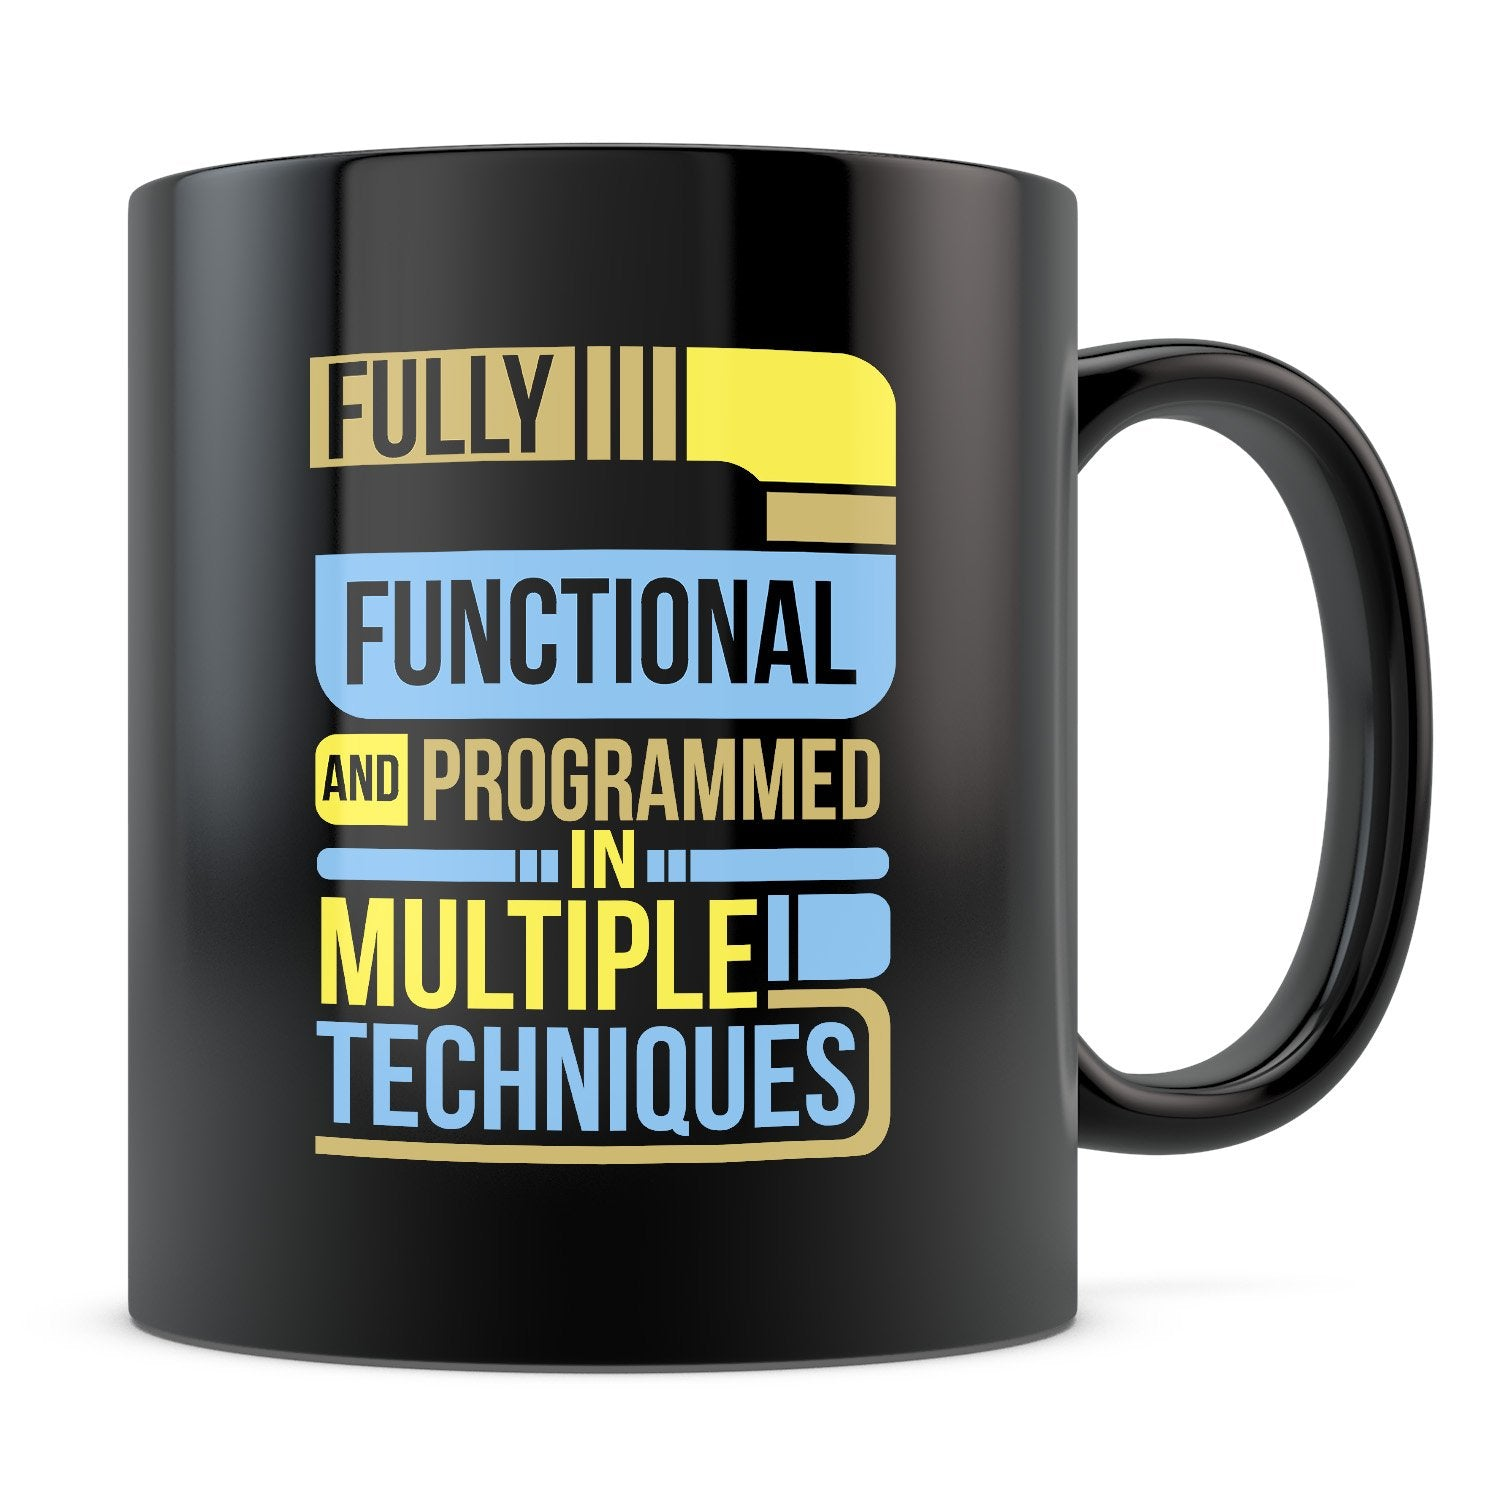 Fully Functional - 11oz/15oz Black Mug-Coffee Mug-CustomCat-11oz Mug-Black-